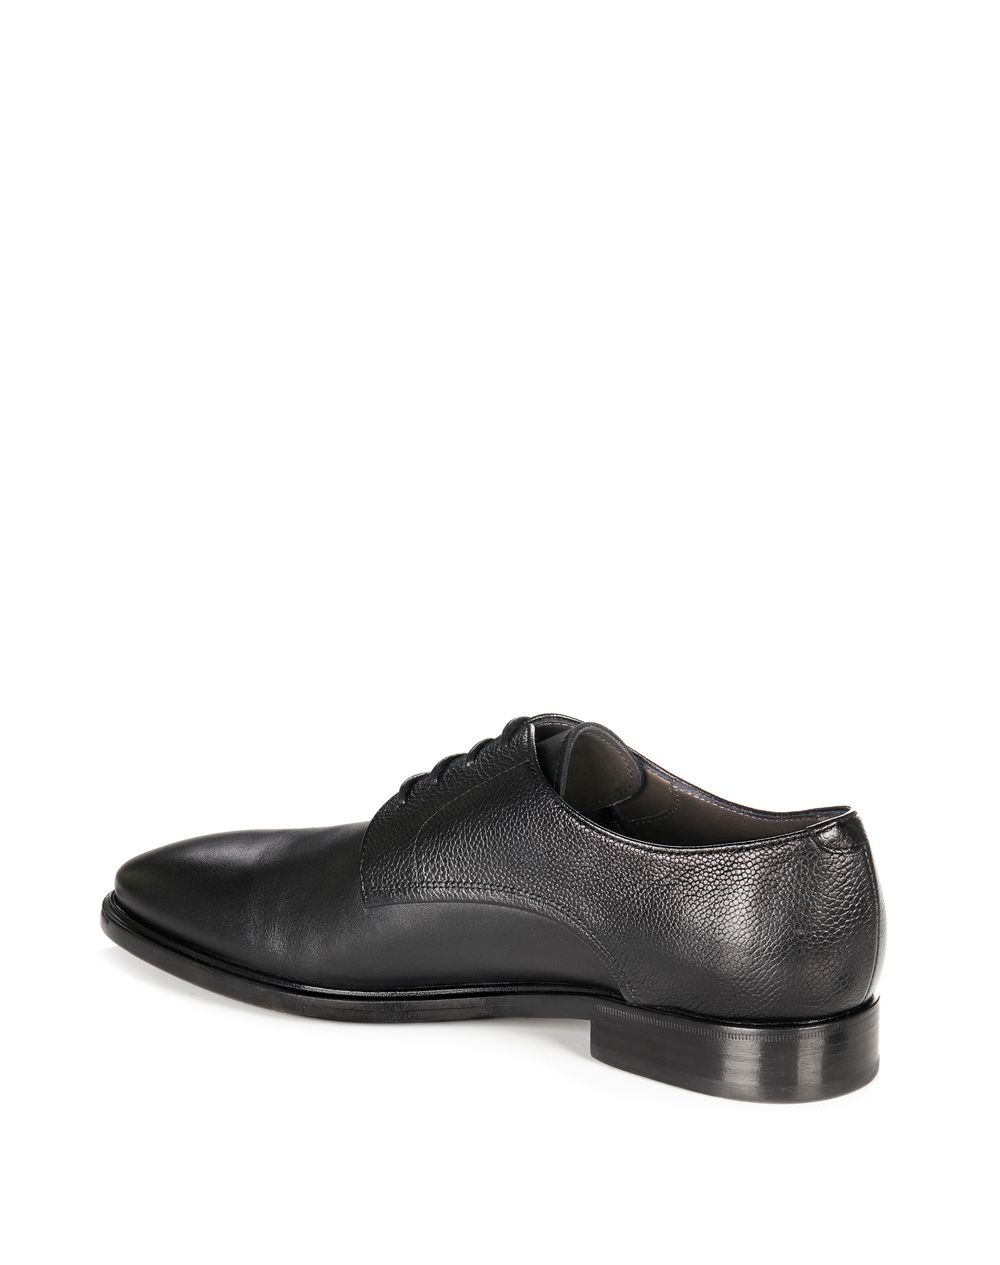 DUAL MATERIAL DERBY - Lanvin